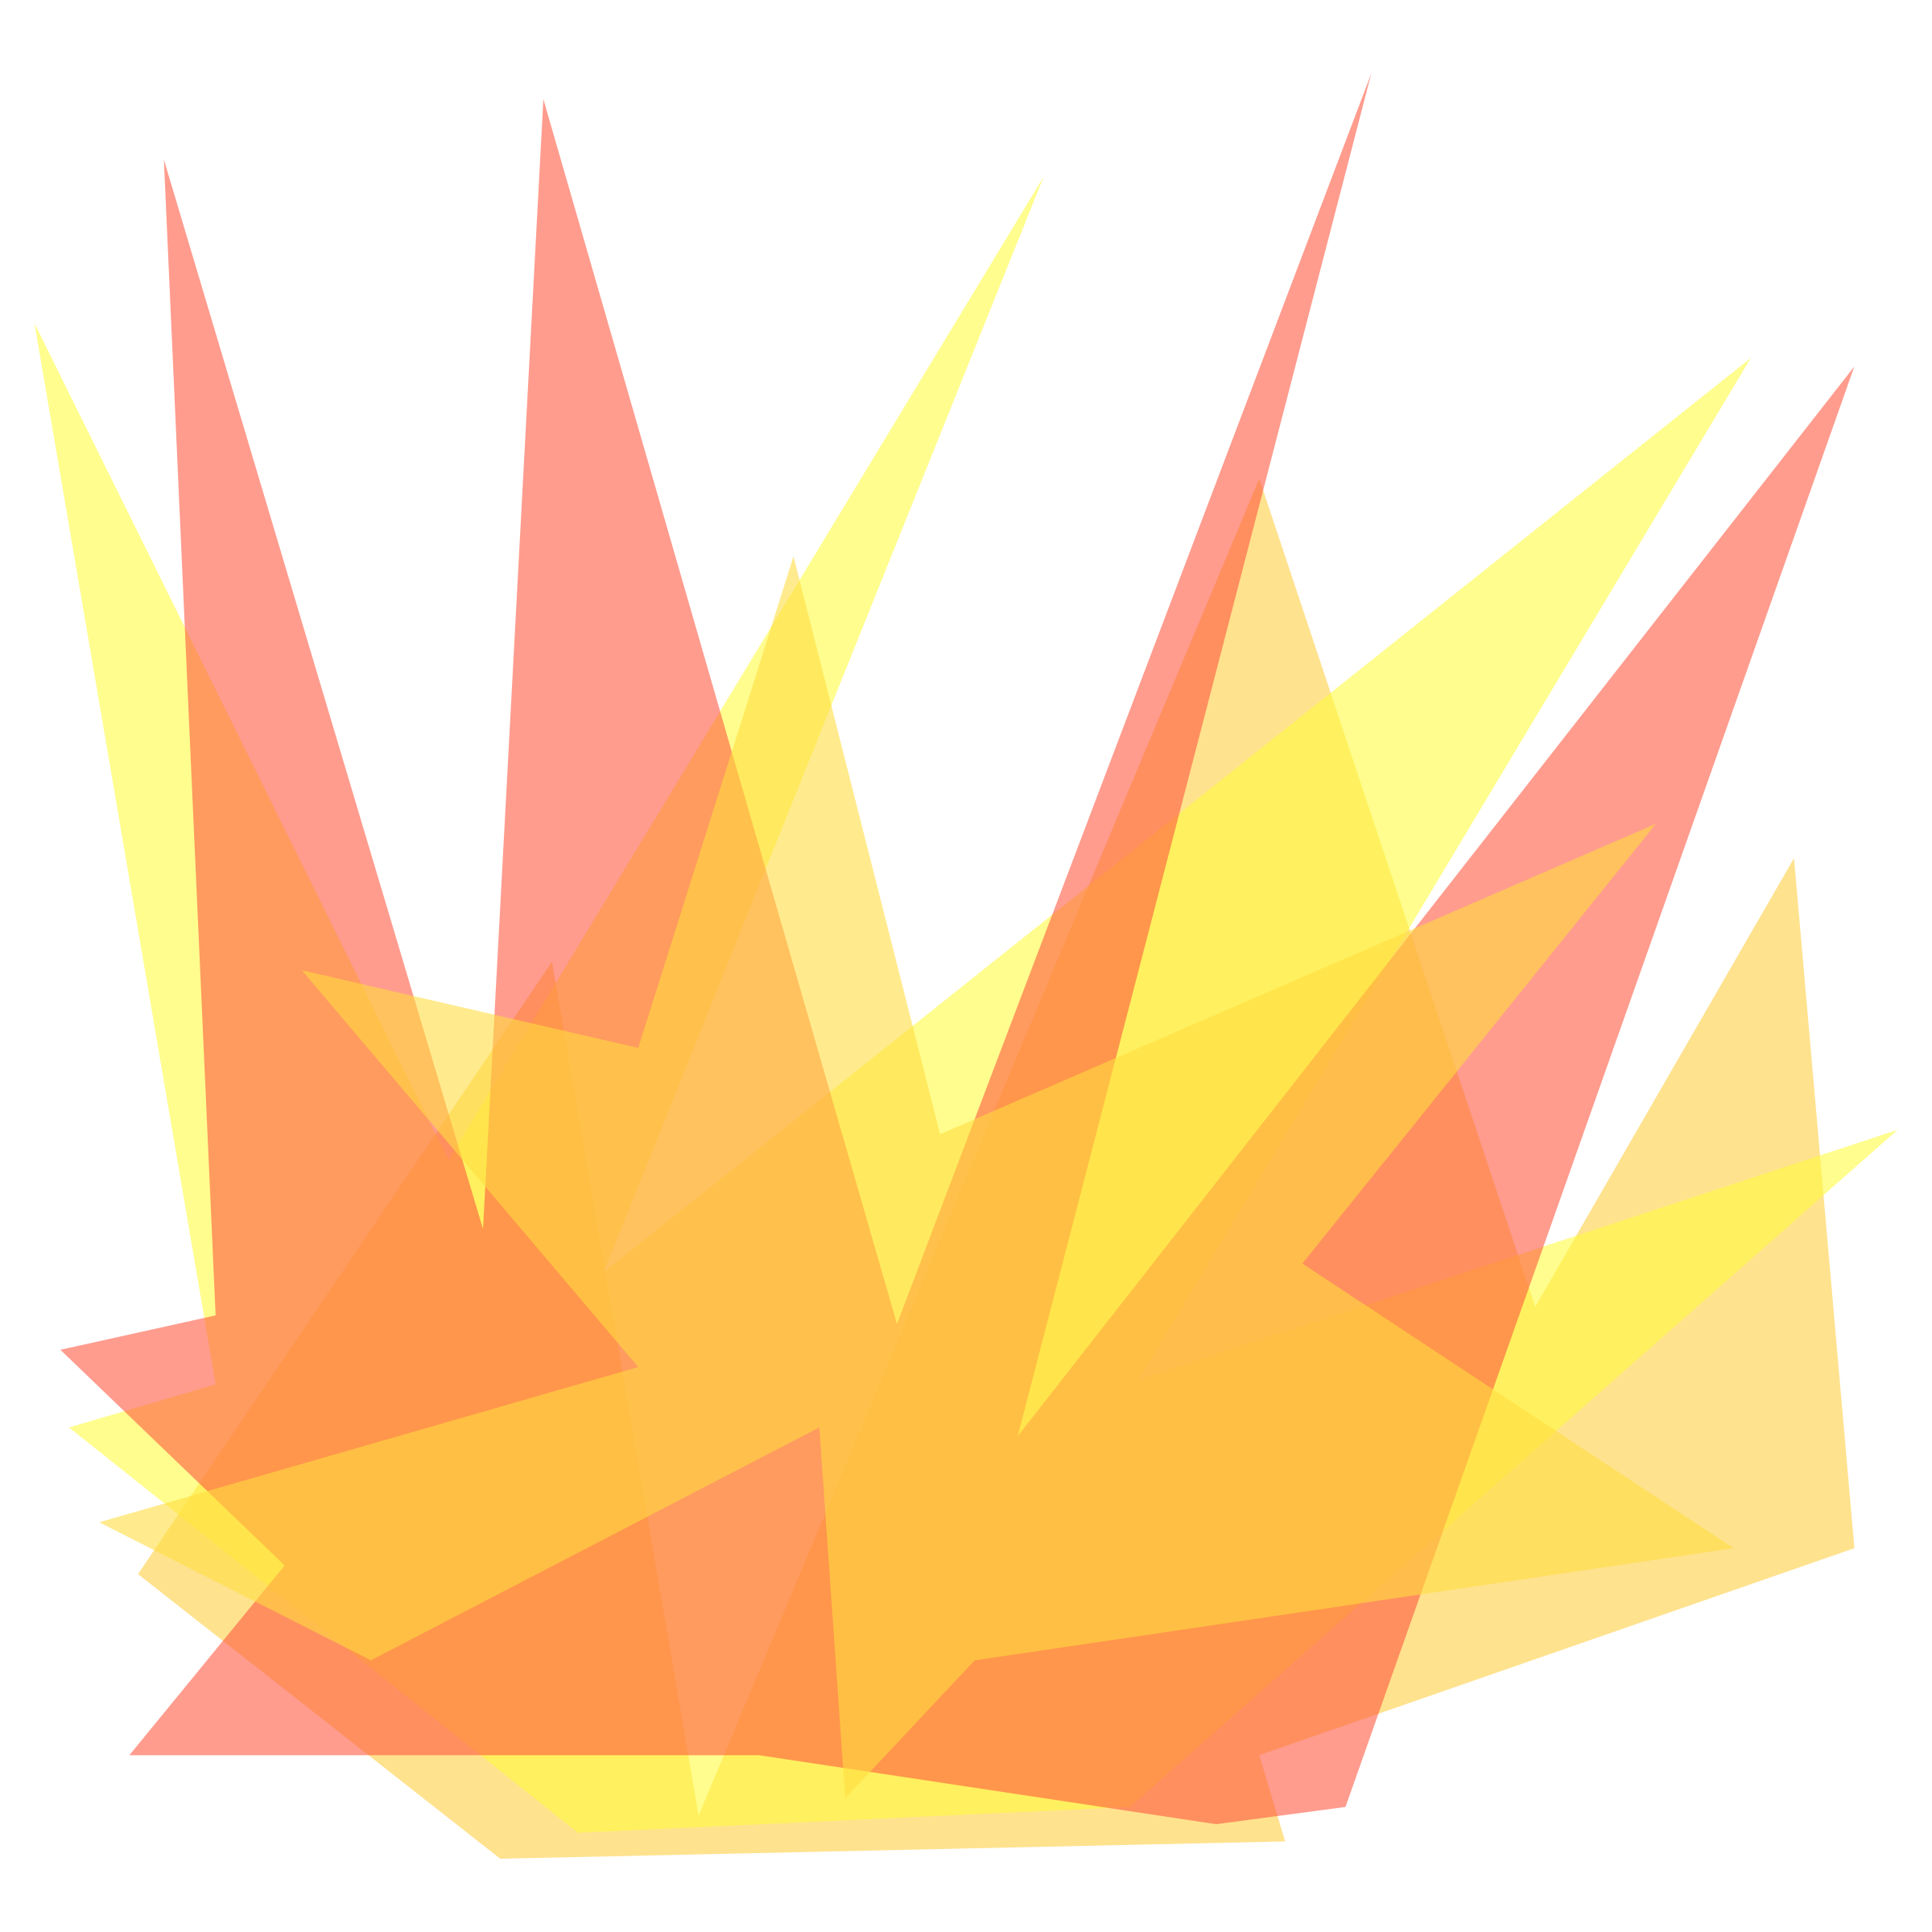 Cartoon Fire Png   Free download on ClipArtMag